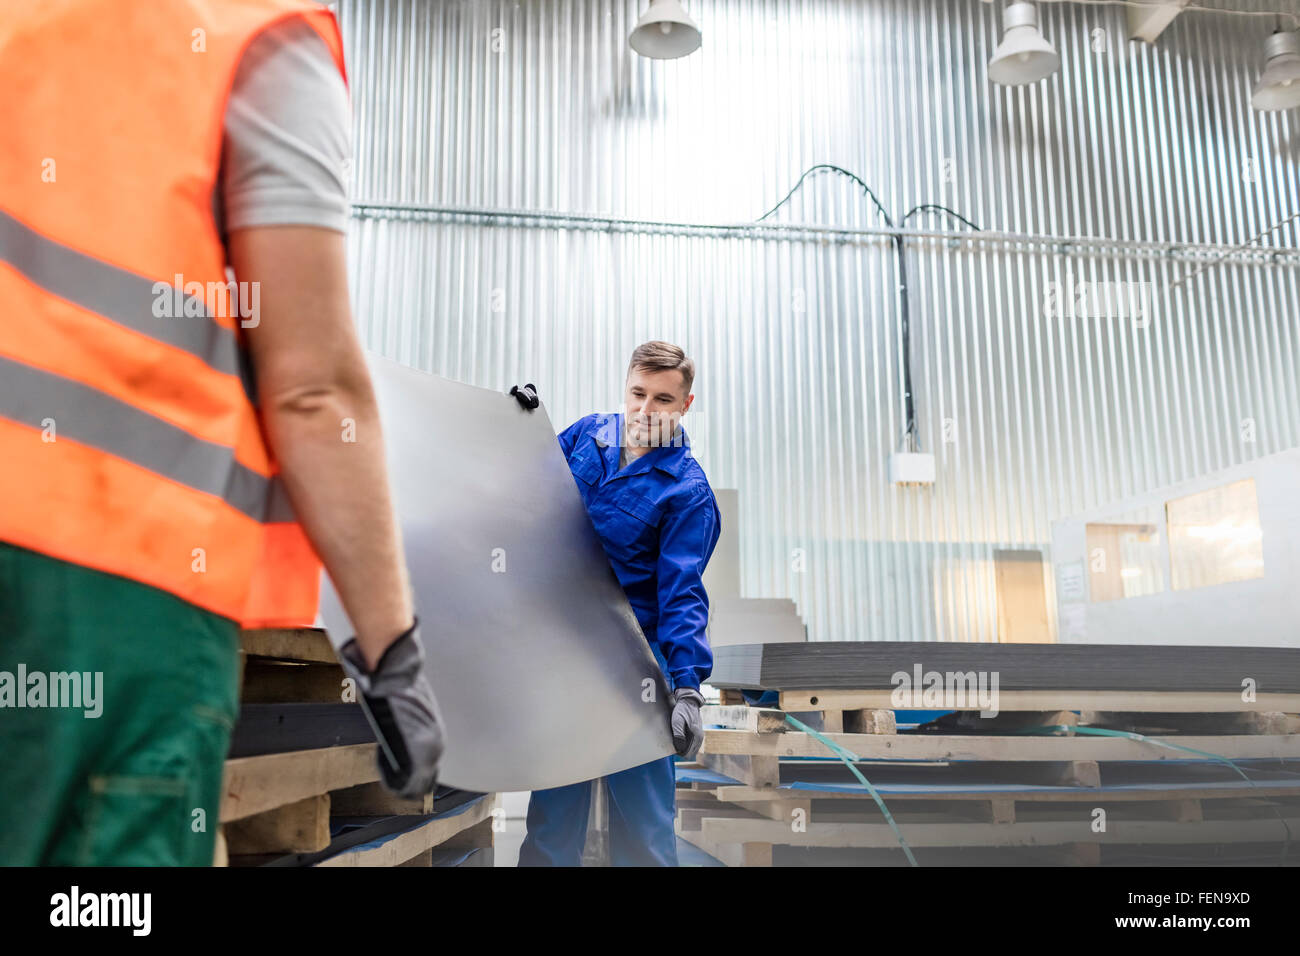 Workers carrying sheet metal in factory - Stock Image